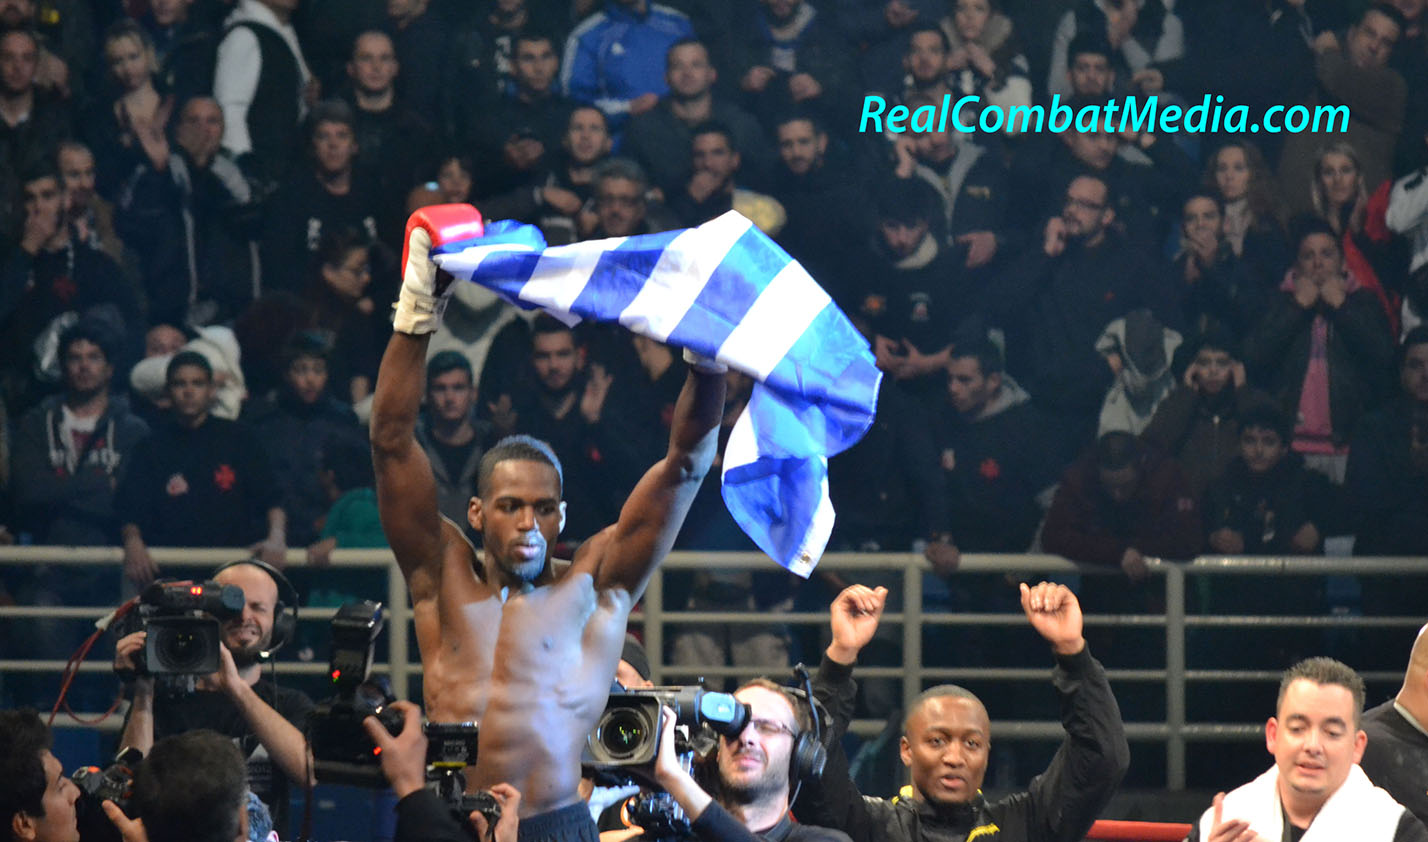 RCMGreece Boxing/MMA: Murthel Groenhart  K-1 World Max Finals Champion!